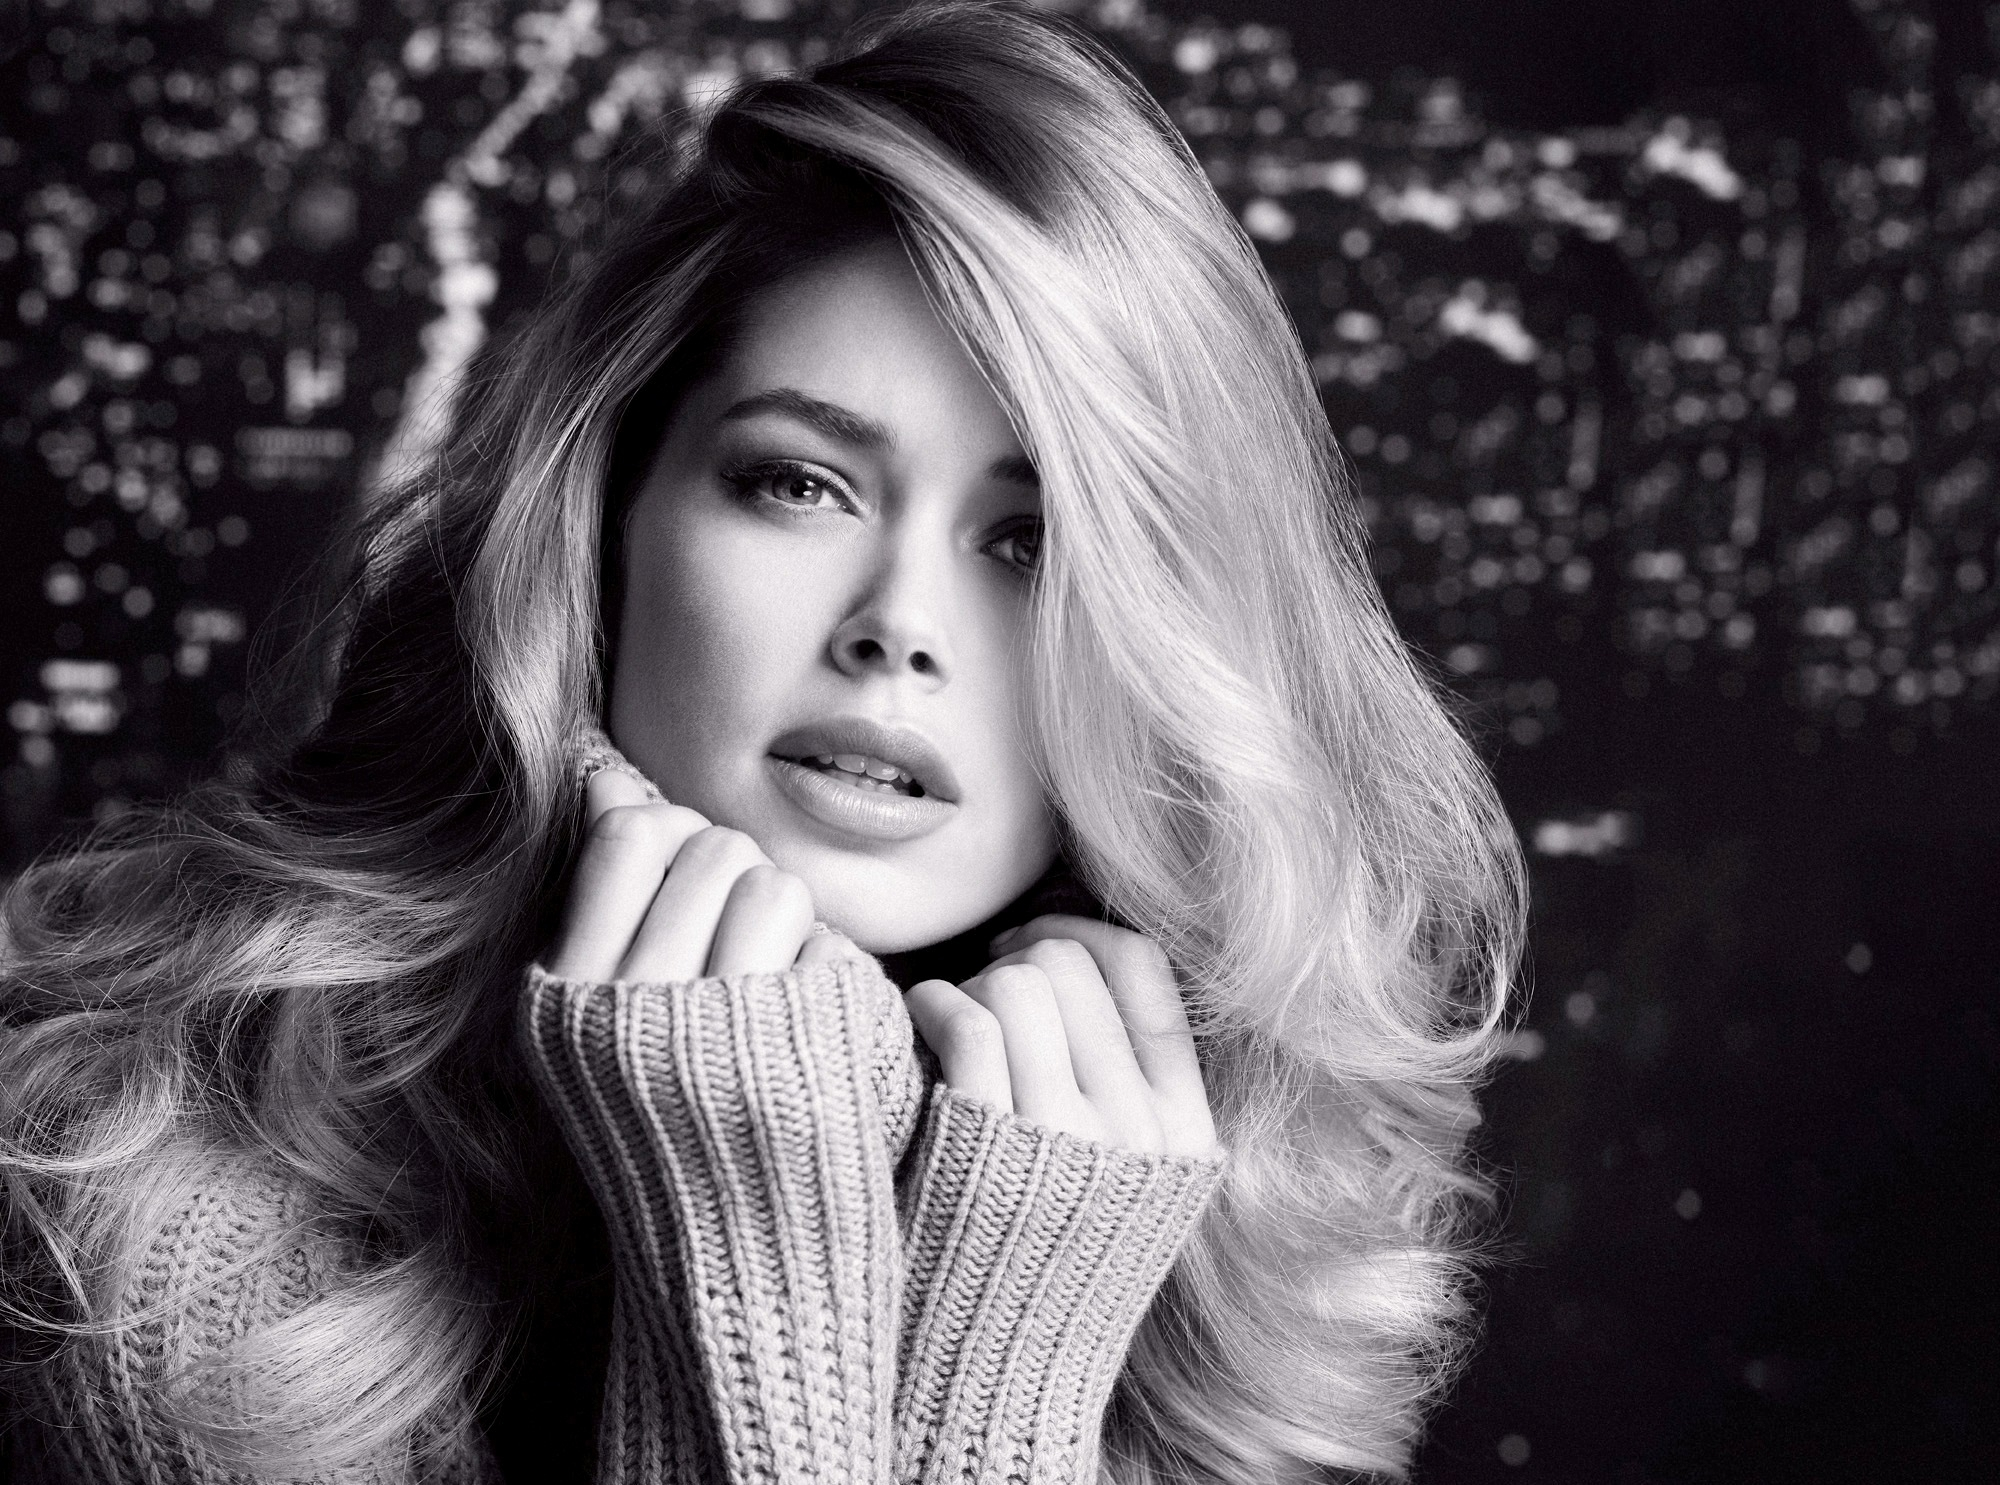 doutzen kroes full hd wallpaper and background image | 2000x1485